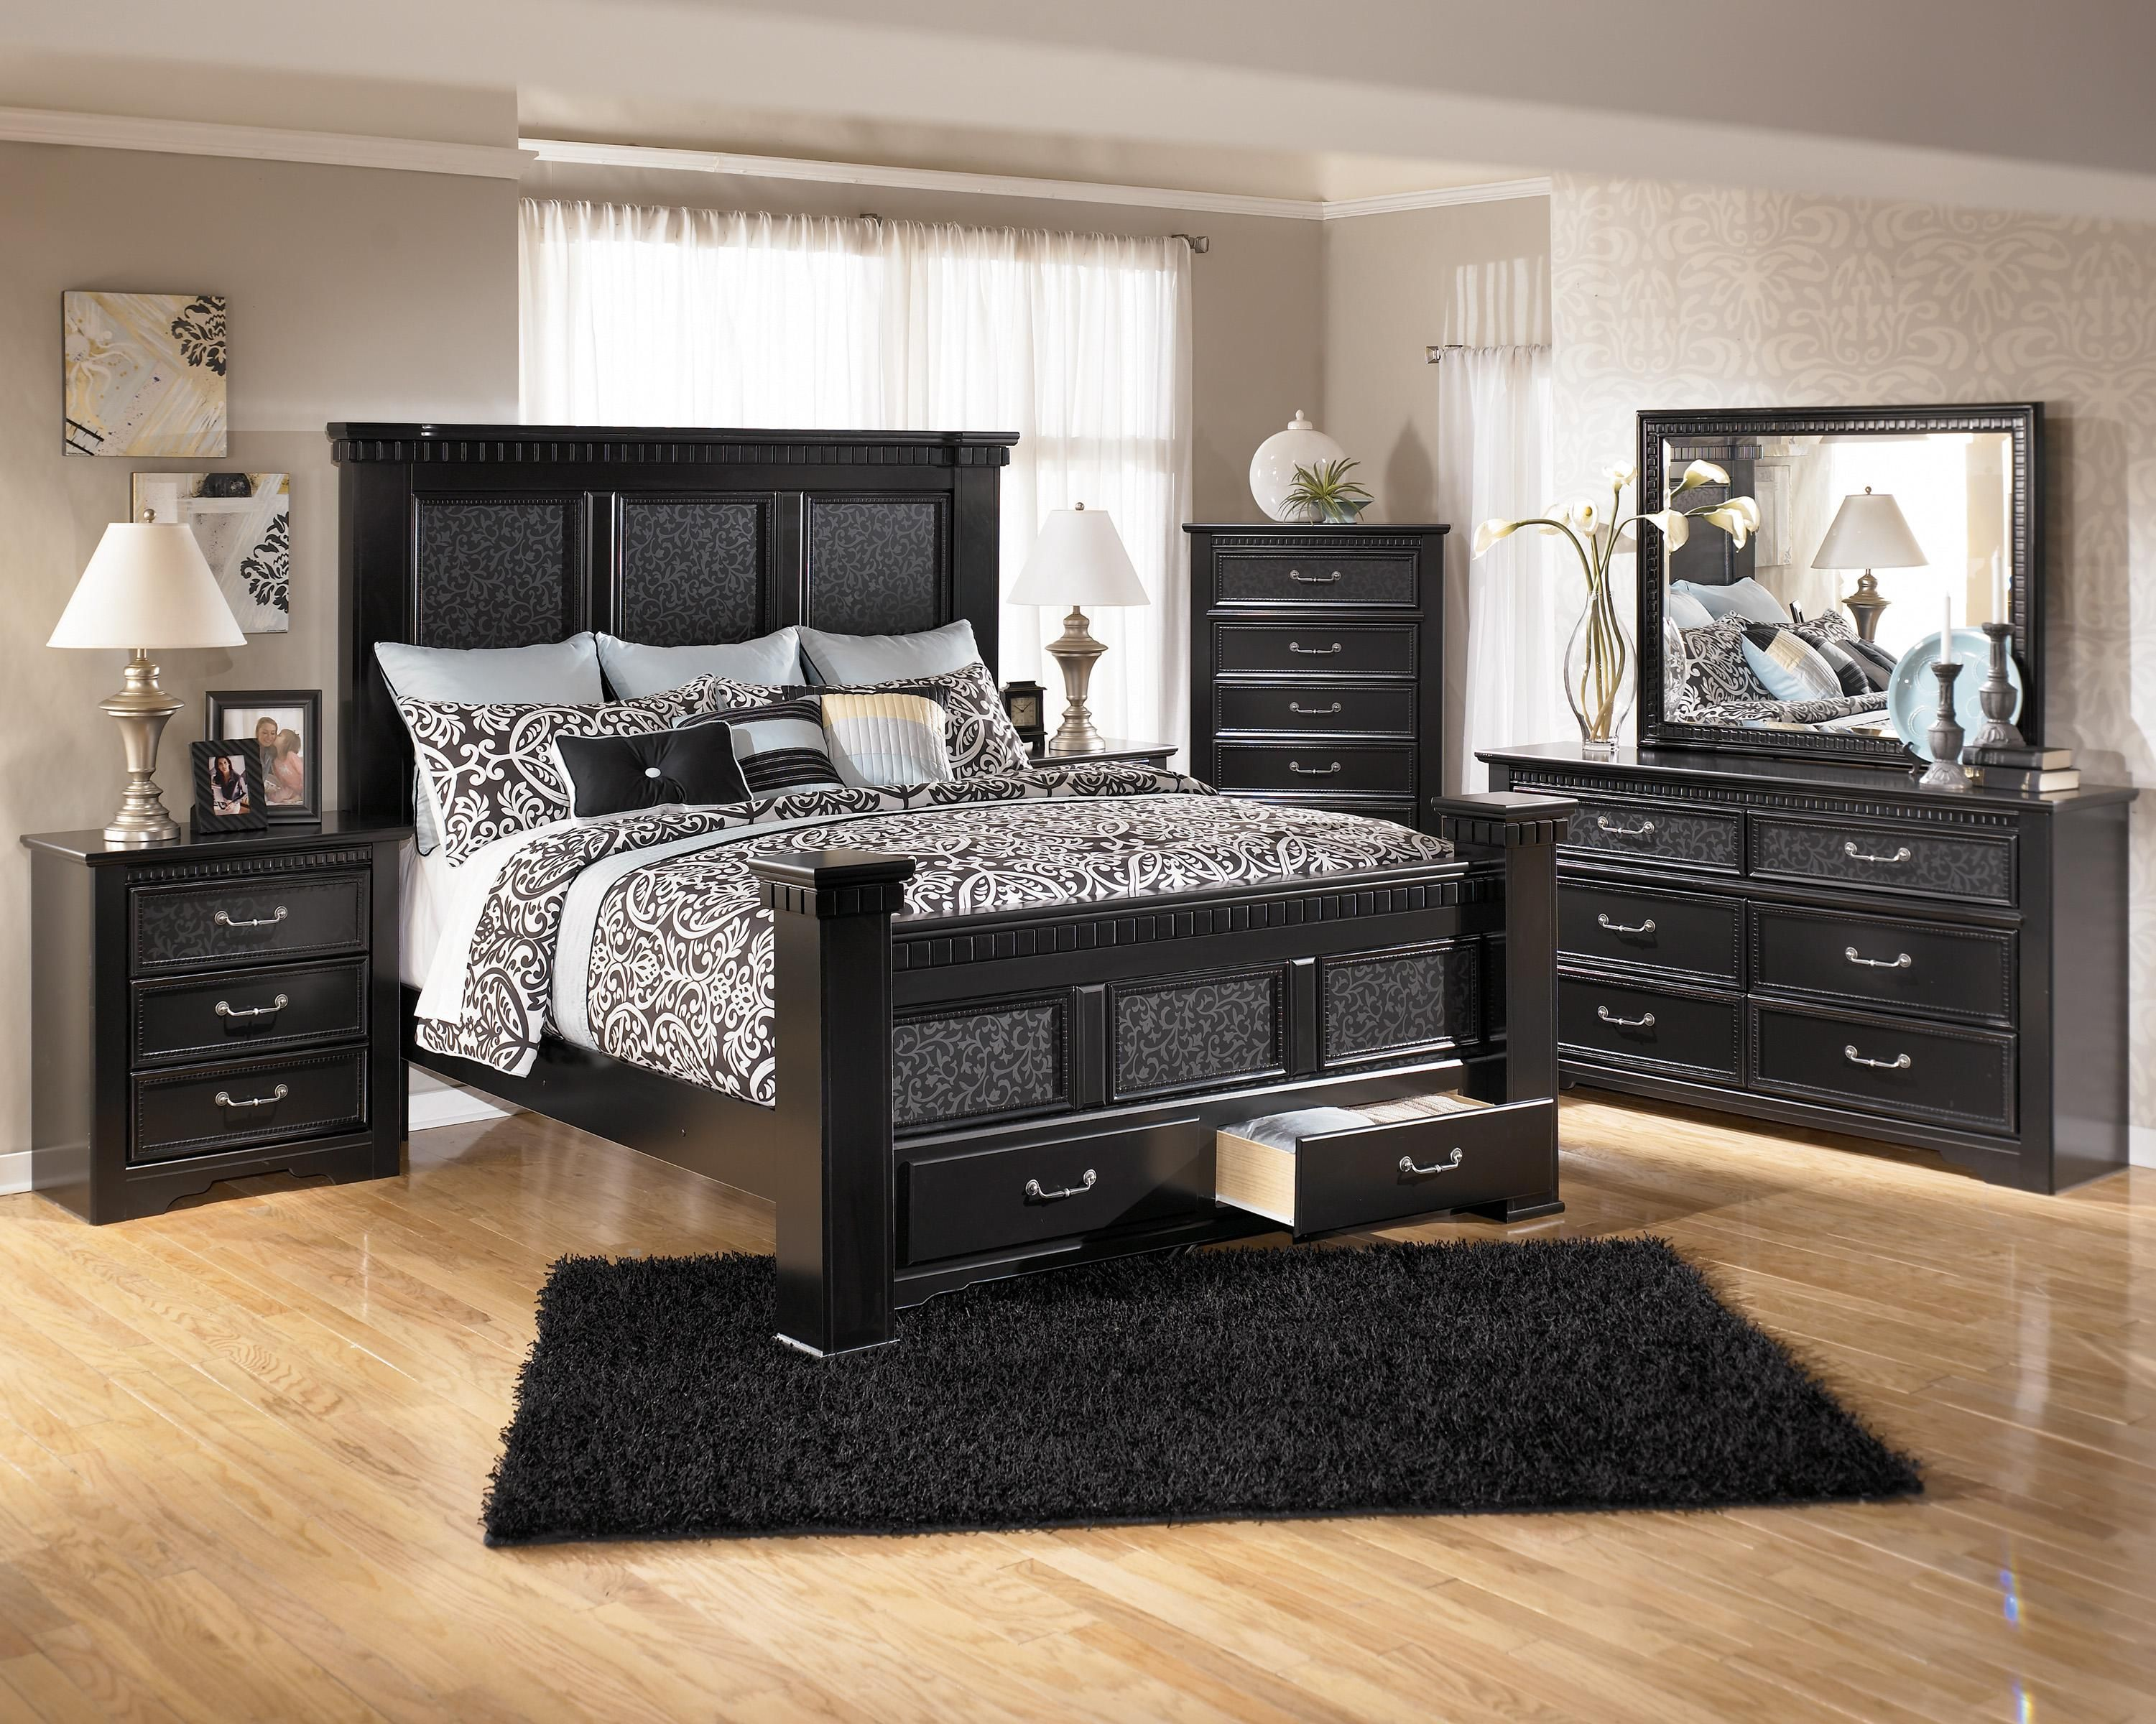 Best Ashley Furniture Cavallino Bedroom Set With Mansion Poster 640 x 480